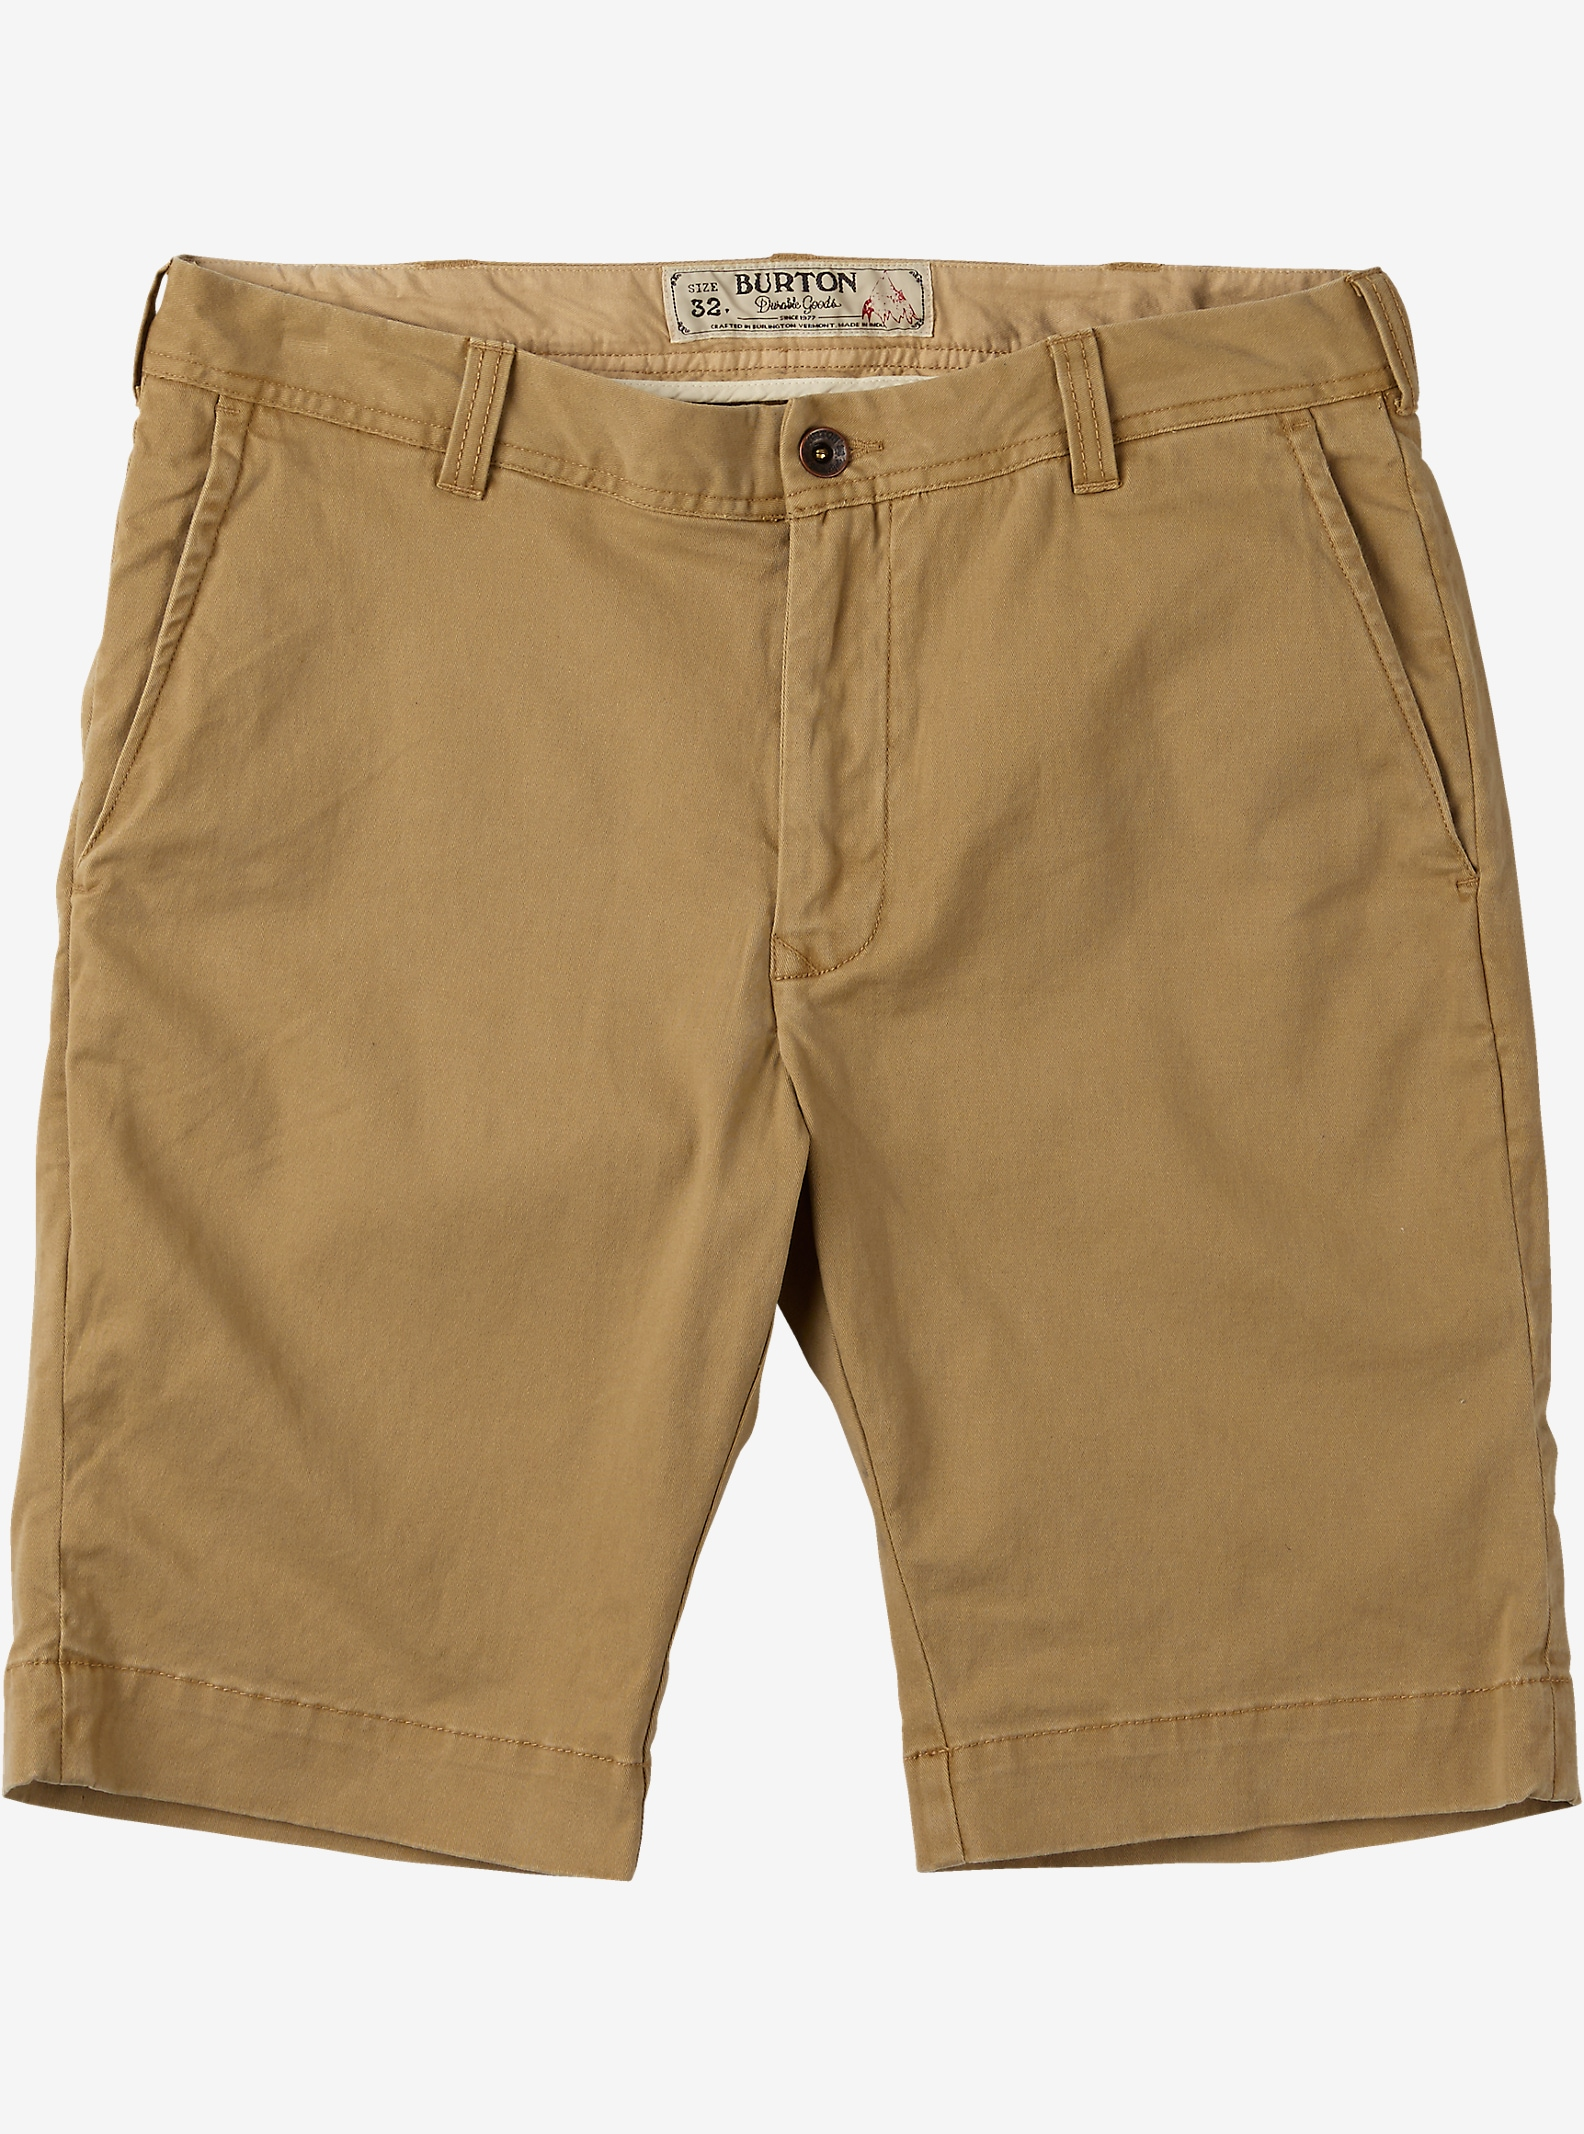 Burton Sawyer Short shown in Kelp